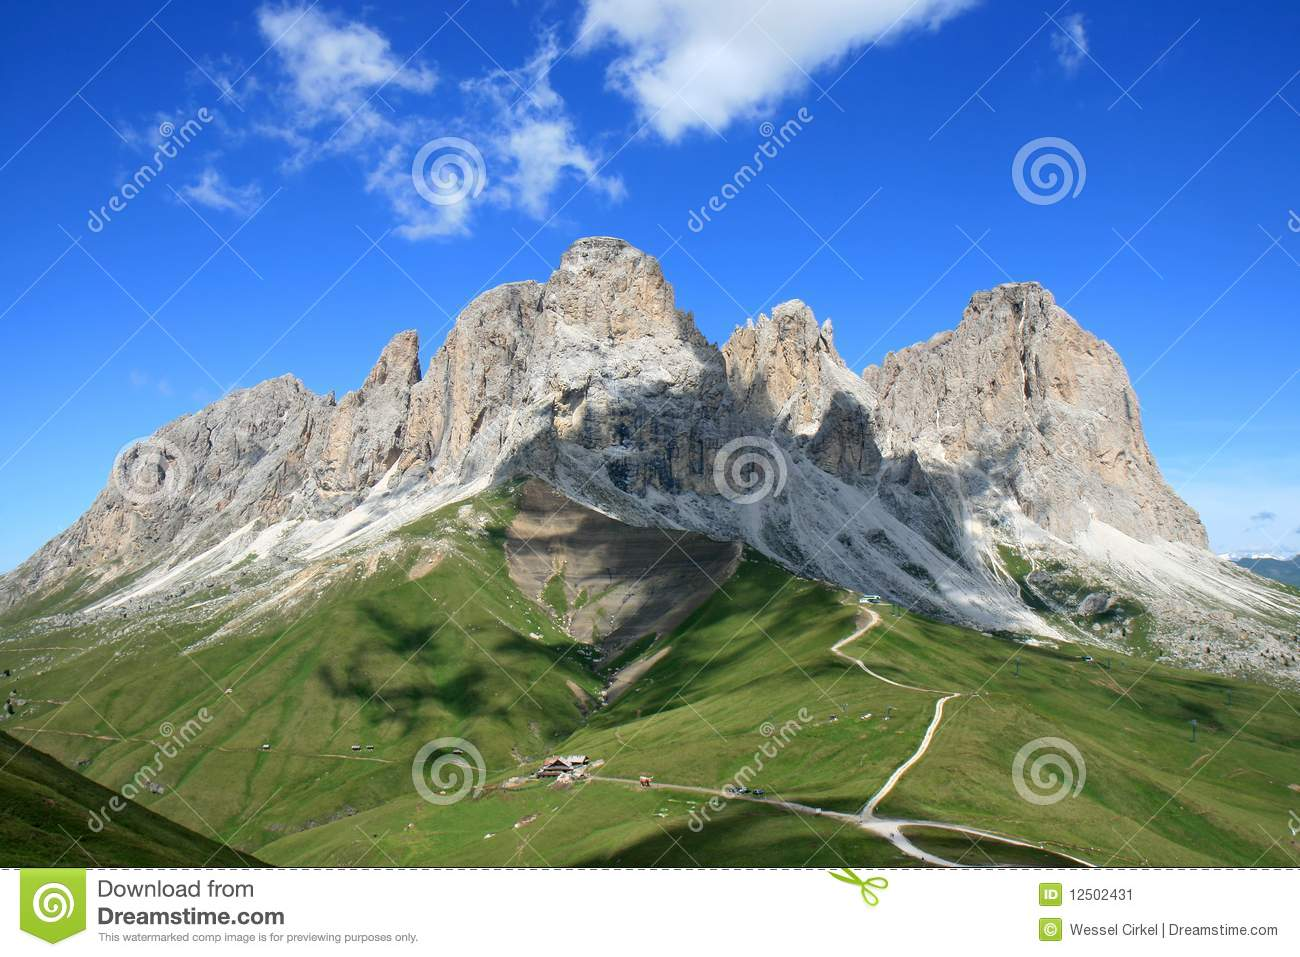 Vista do Massif de Sassolungo, dolomites italianas